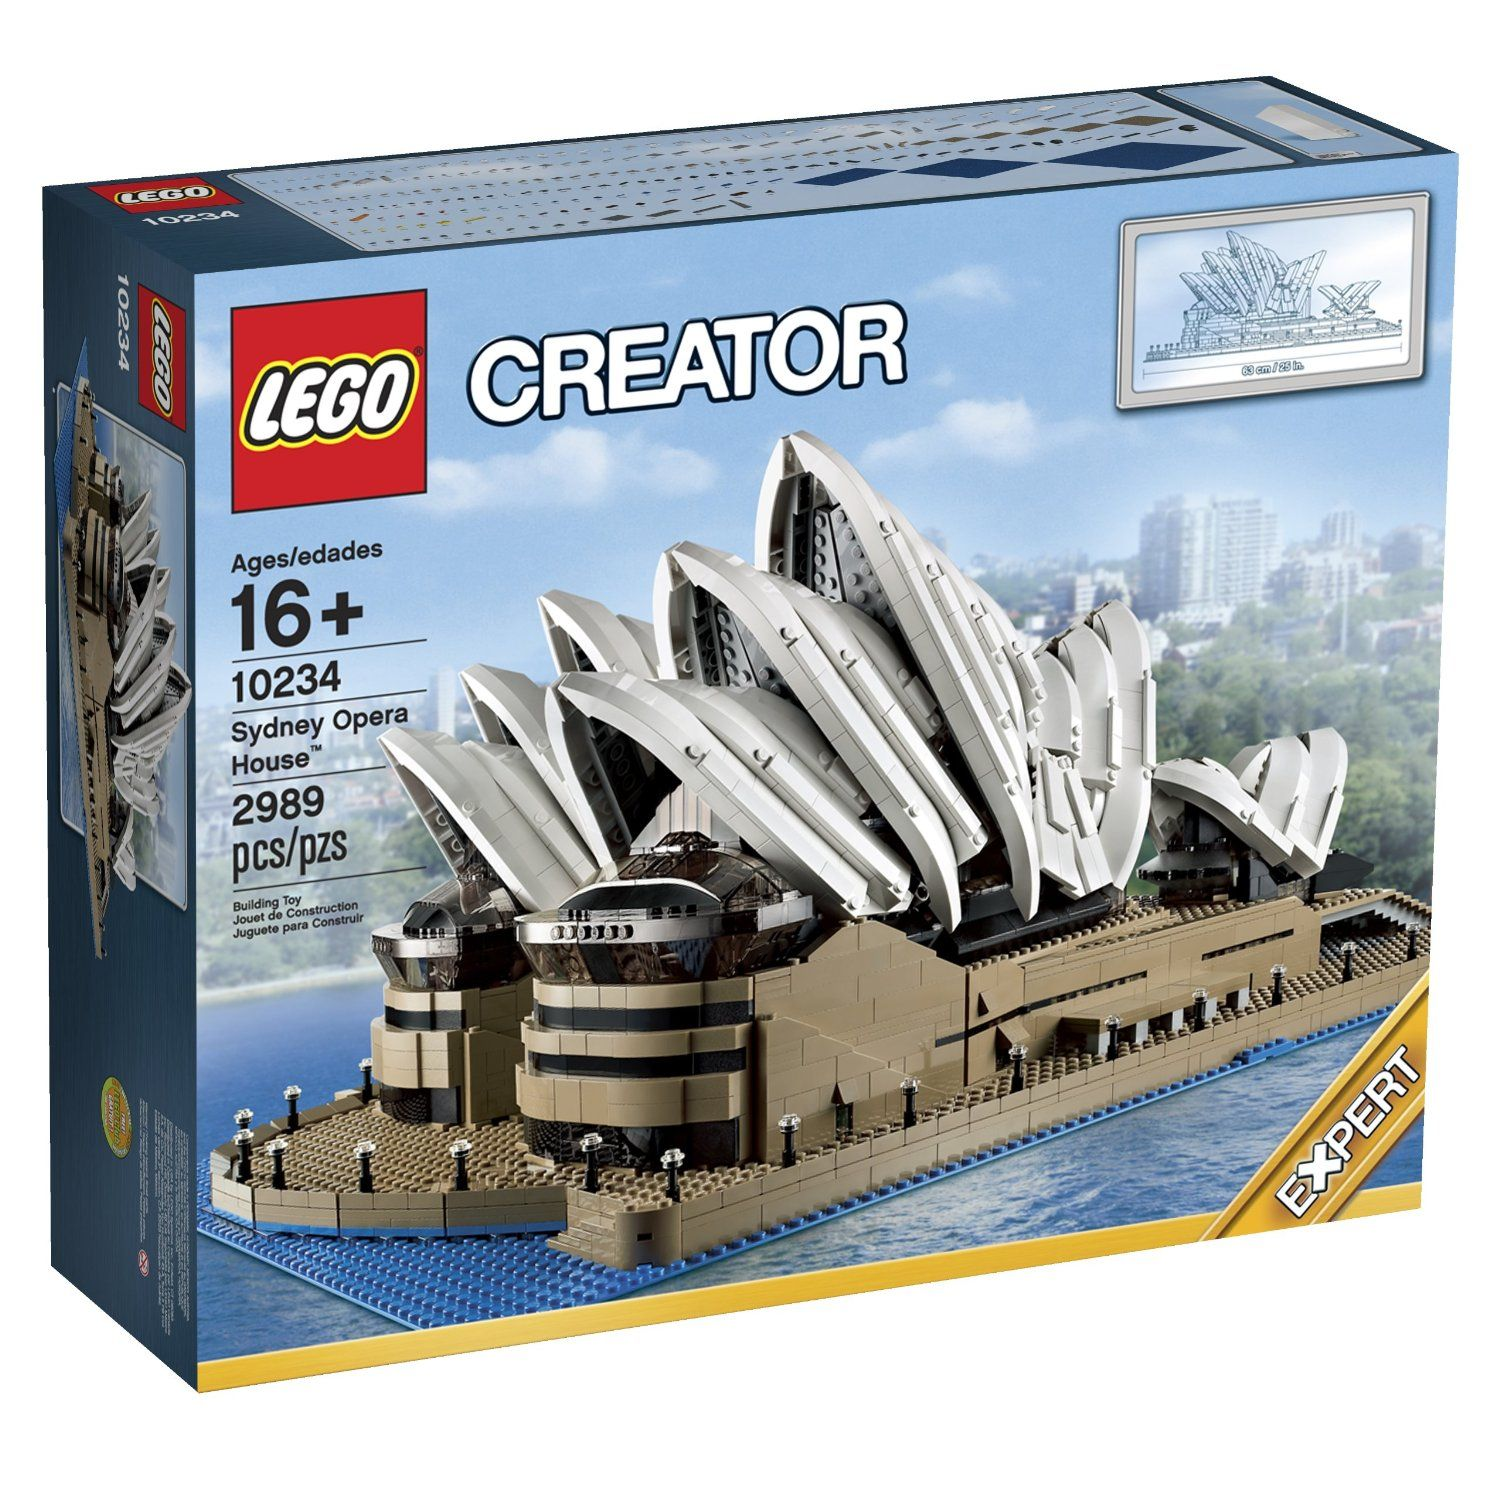 Pin lego 60032 city the lego summer wave in official images on - Build The Sydney Opera House In Lego Form With Dark Tan Lego Bricks Blue Baseplate And Advanced Building Techniques